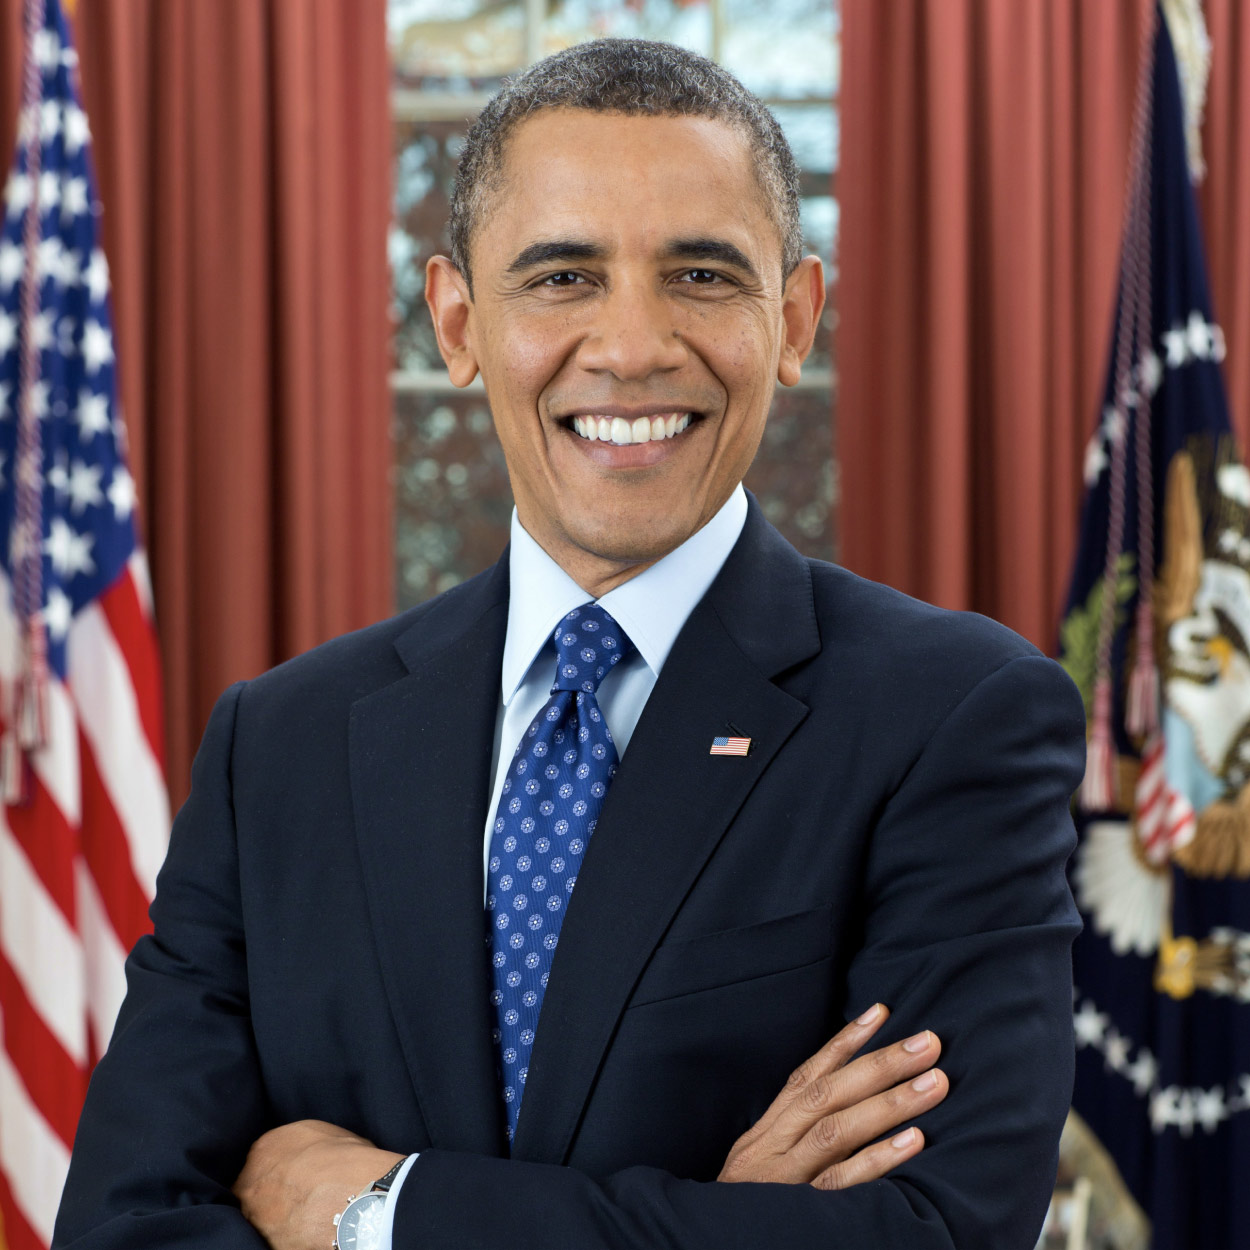 Portrait of Barack Obama, the 44th President of the United States